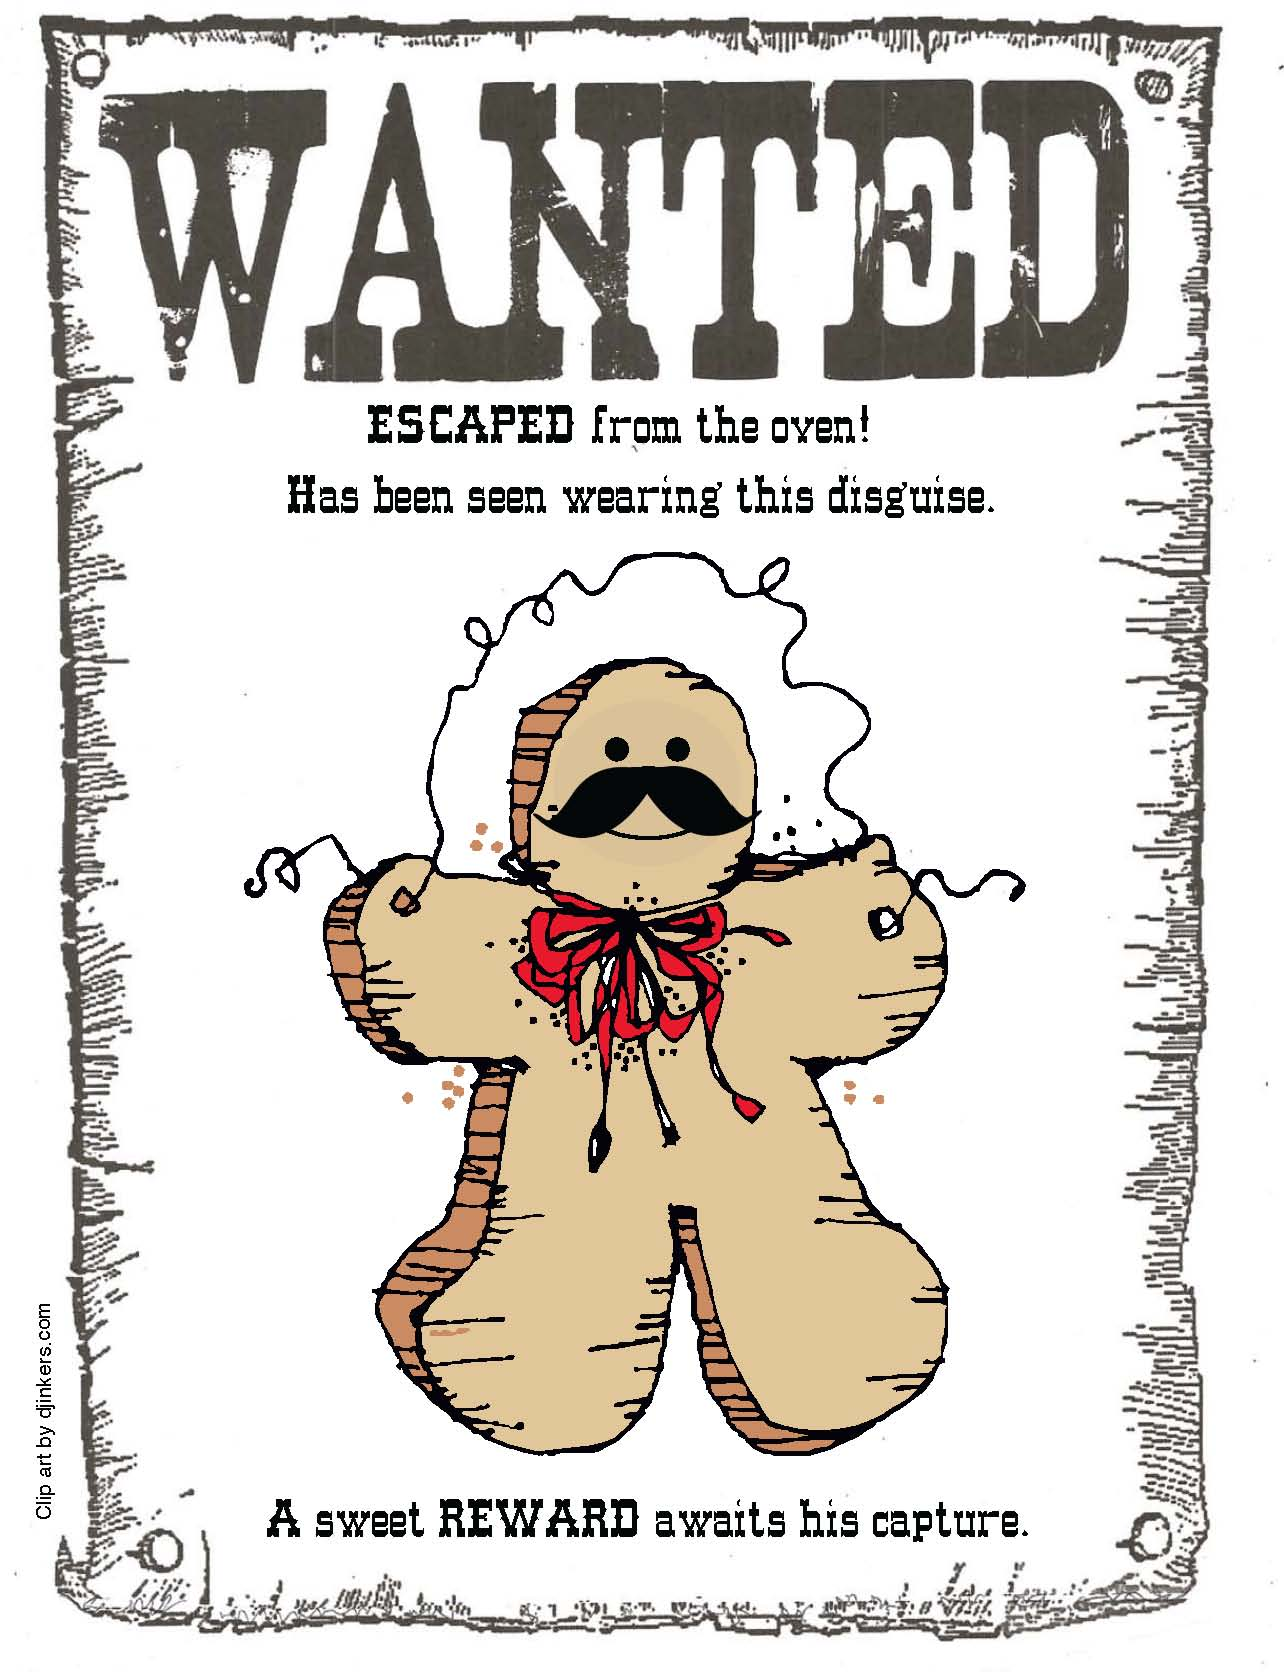 gingerbread activities, gingerbread lessons, activities to go with The gingerbread man story, common core gingerbread, word family activities, an family activities, ox family activities, gingerbread crafts, gingerbread with a mustache, wanted posters, common core gingerbread, daily 5 for december,